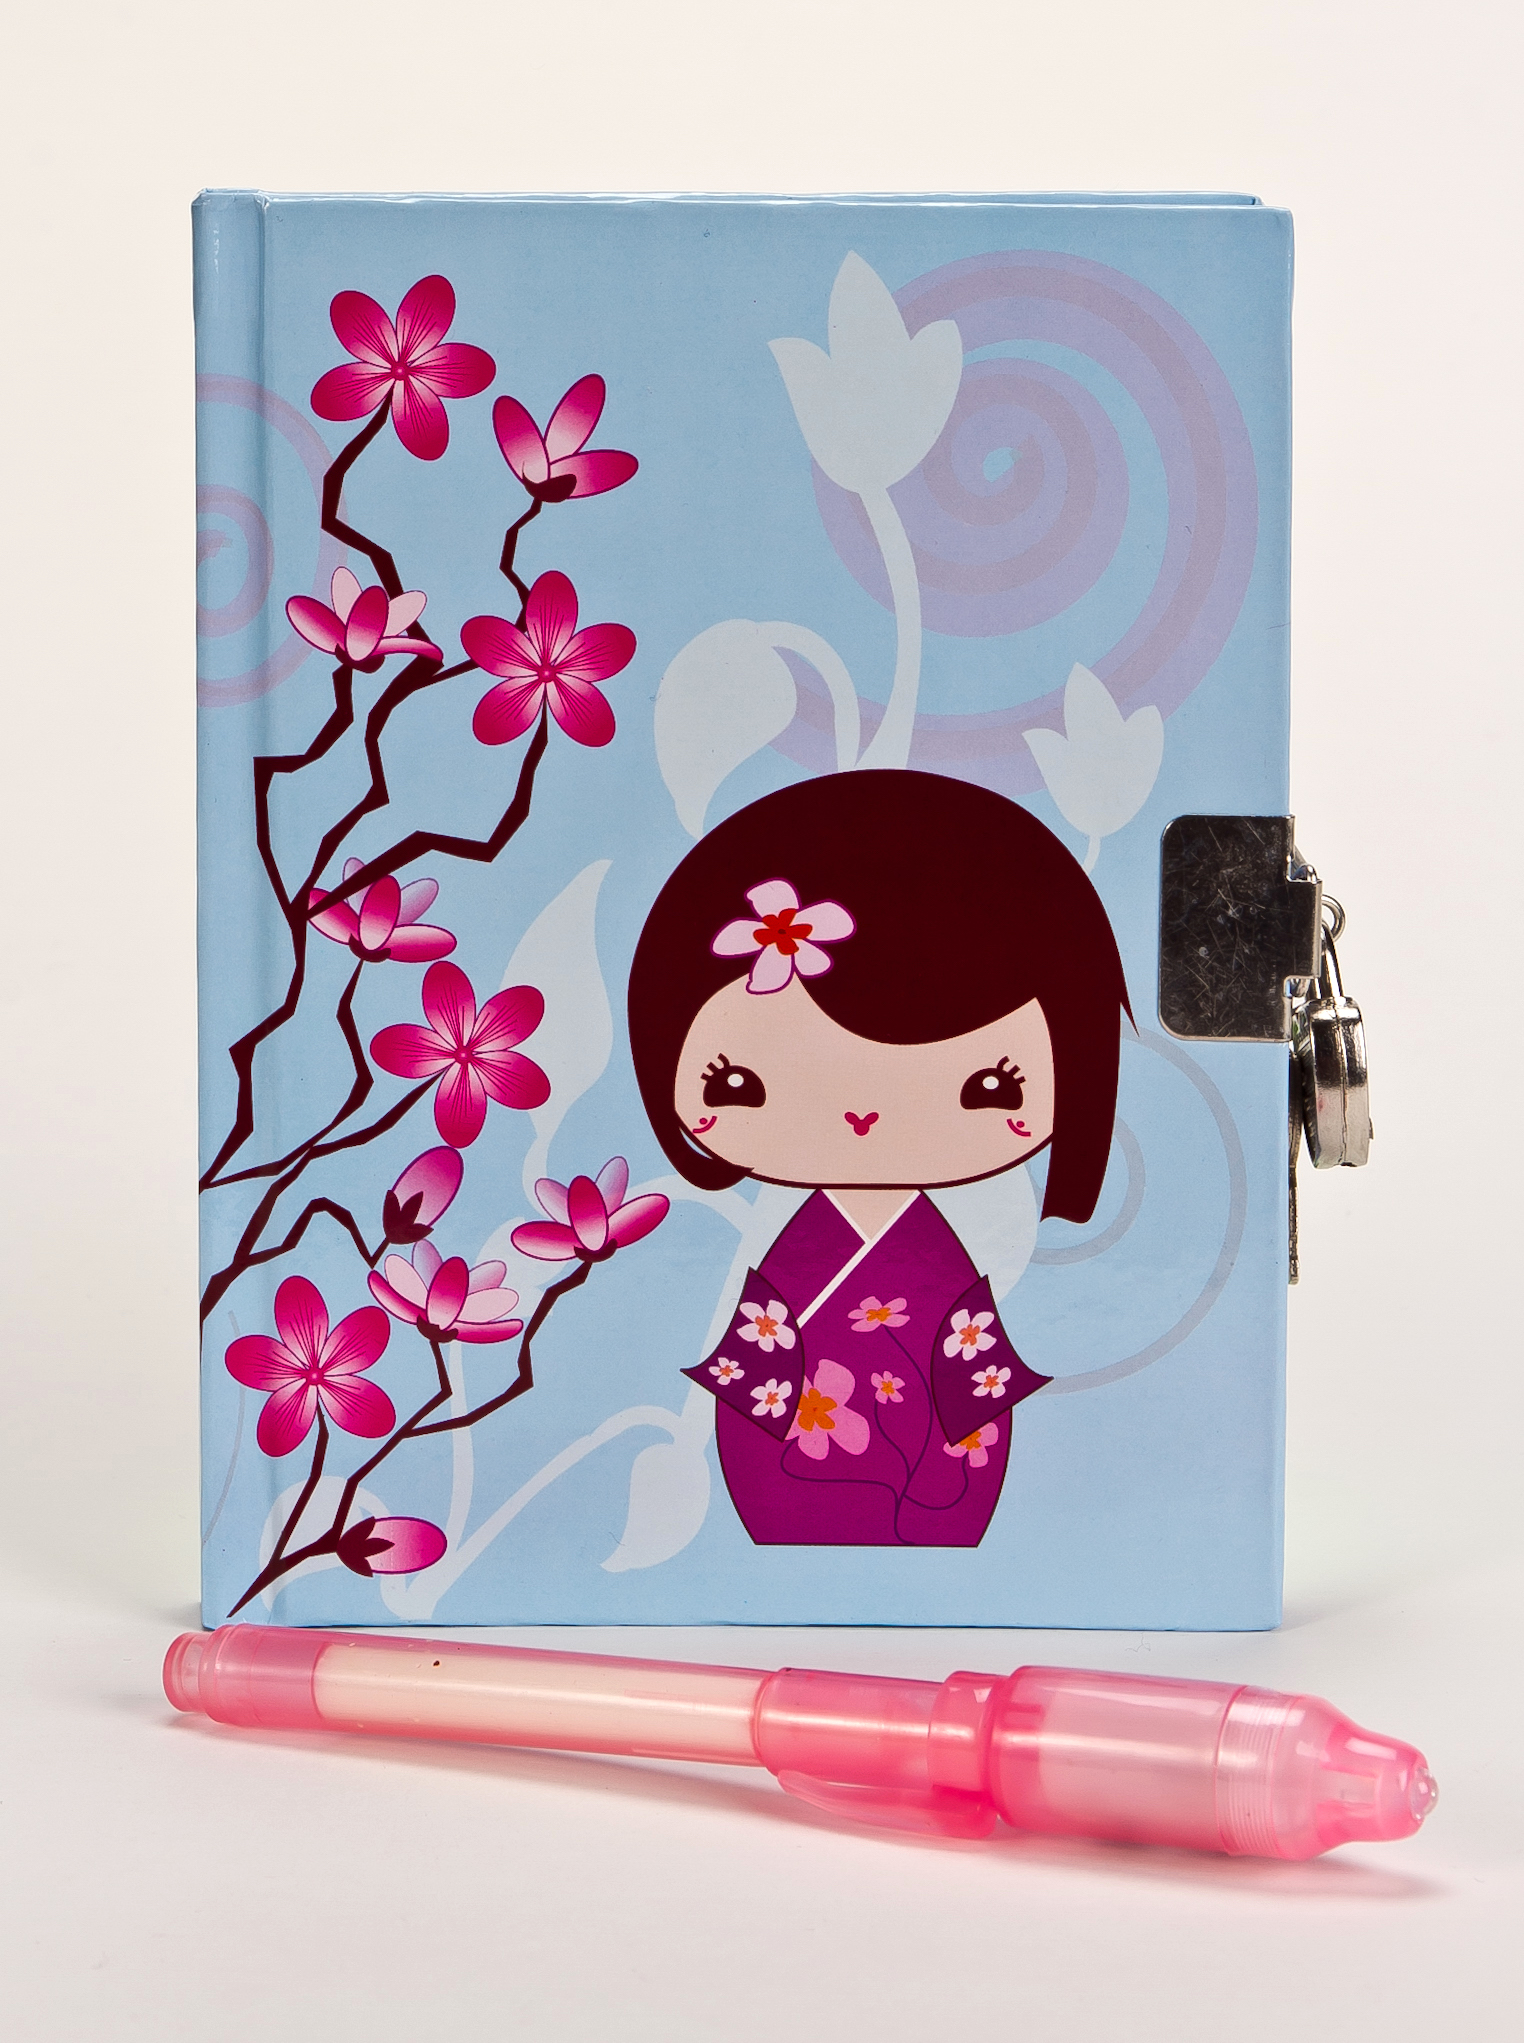 Cherry Blossom Journal and Pen